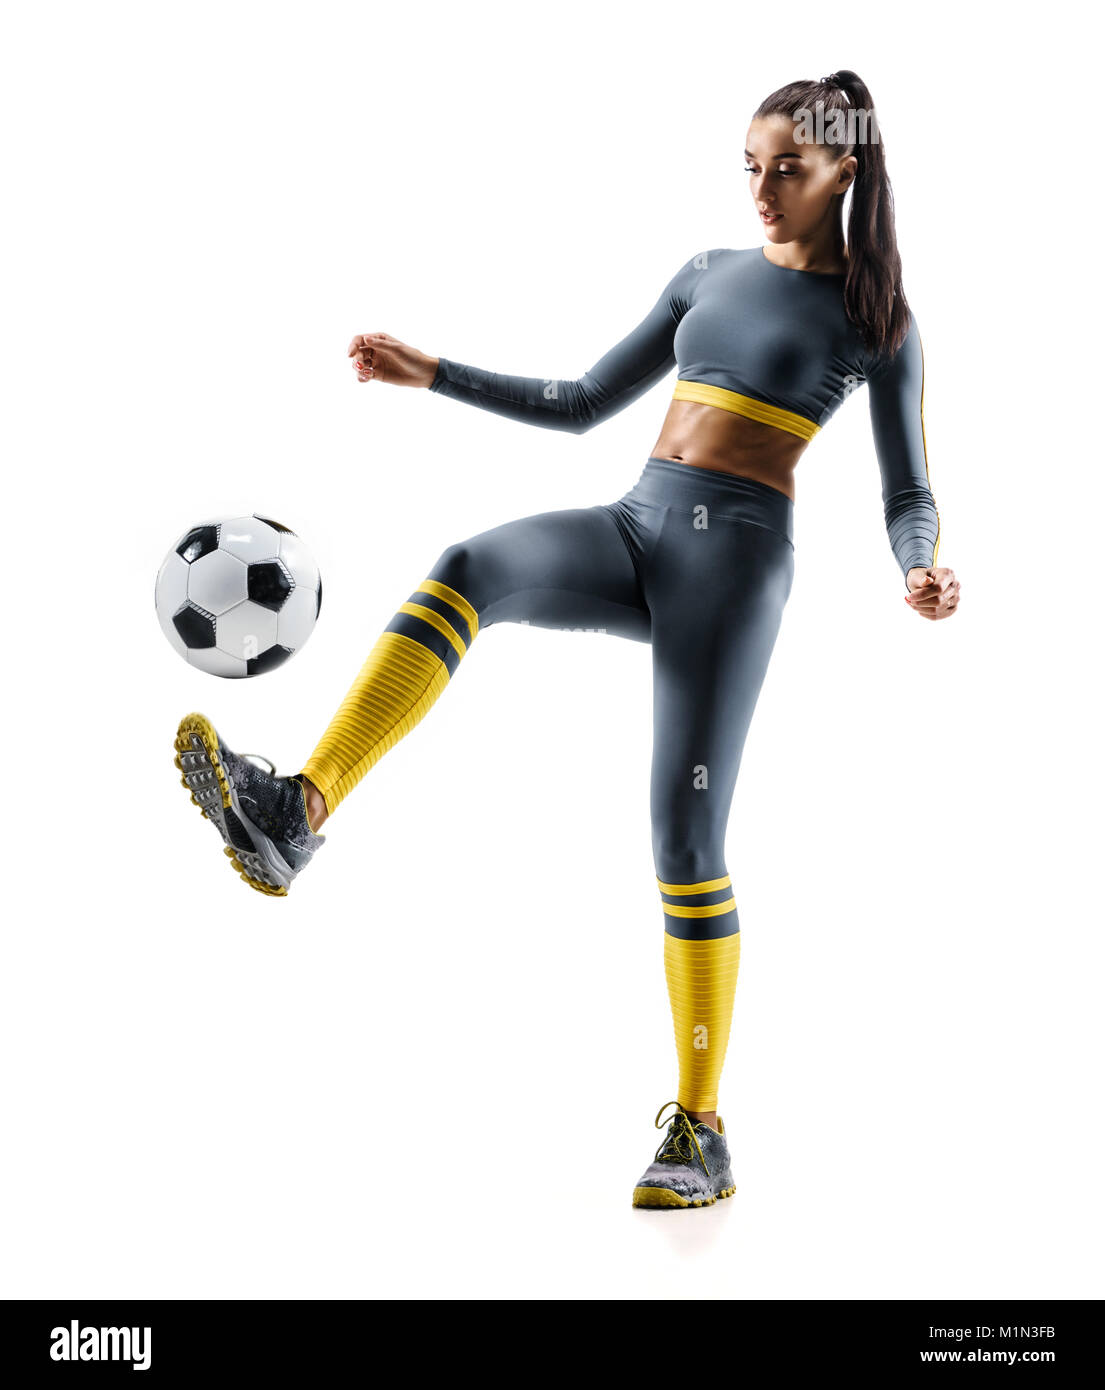 20afbaaaaa7 Football soccer player in action. Photo of sporty woman in sportswear  isolated white background.